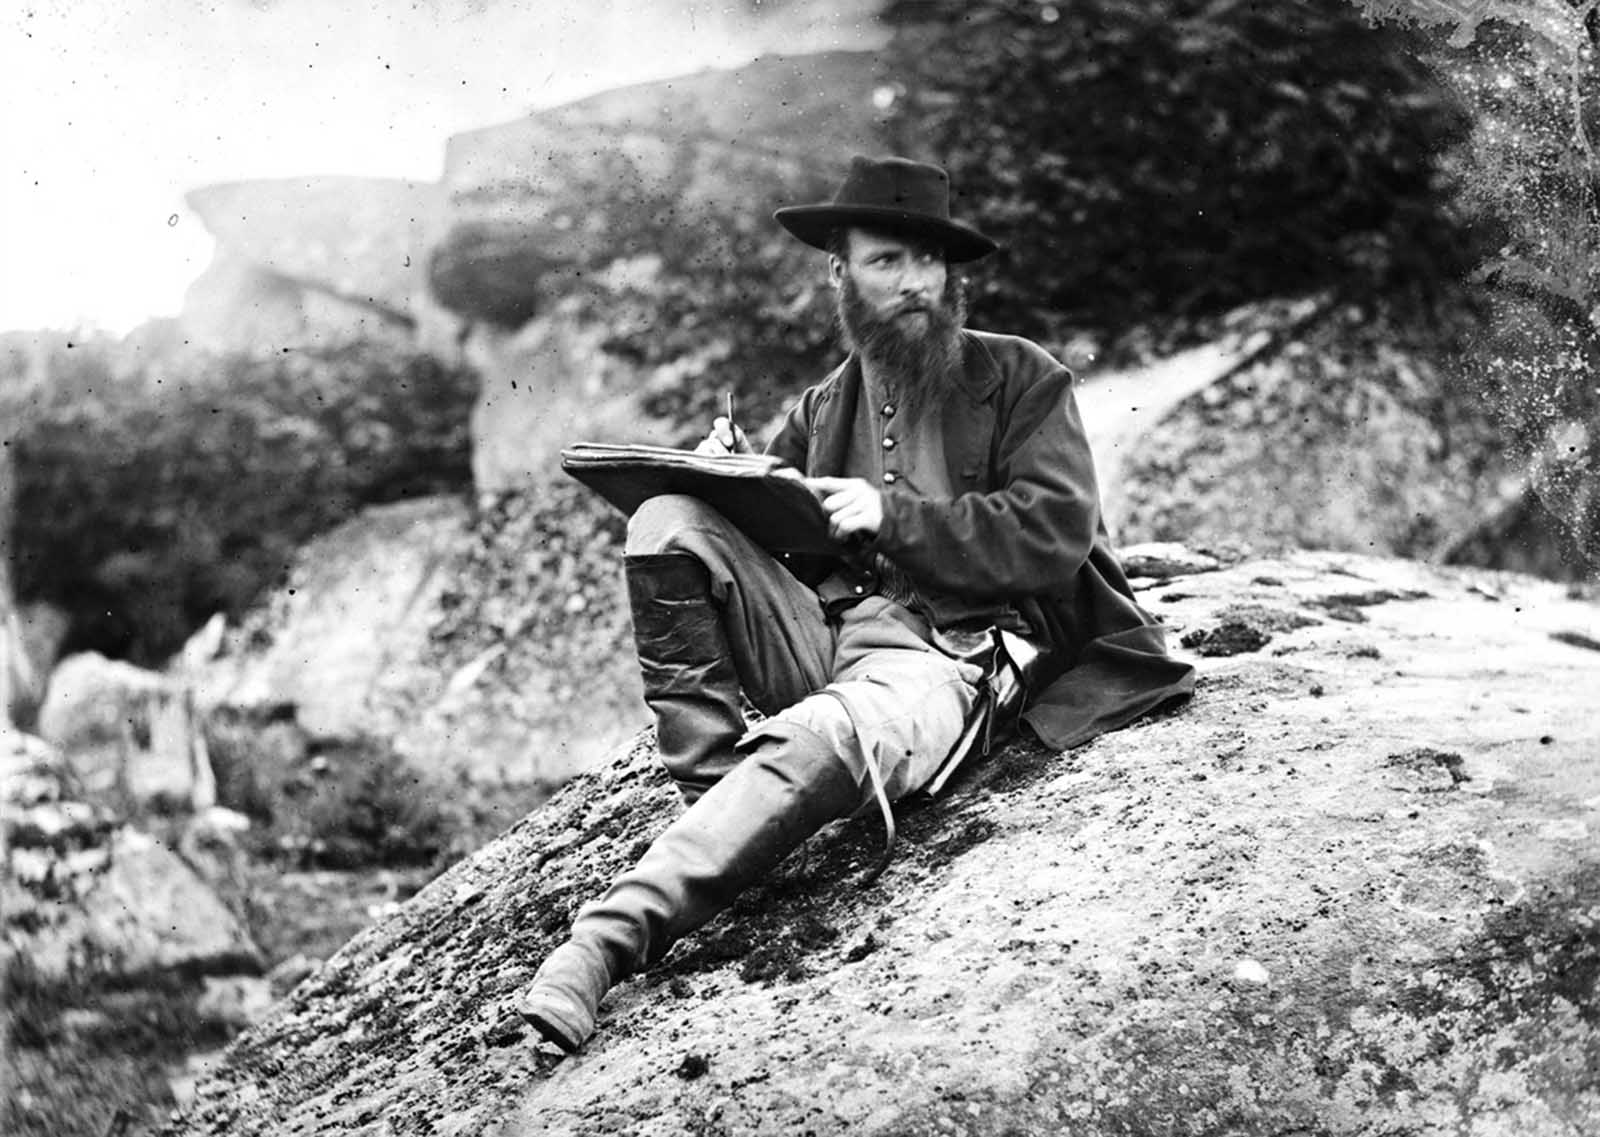 Photographer Timothy H. O'Sullivan took this photo, one half of a stereo view of Alfred R. Waud, artist of Harper's Weekly, while he sketched on the battlefield near Gettysburg, Pennsylvania in July of 1863.